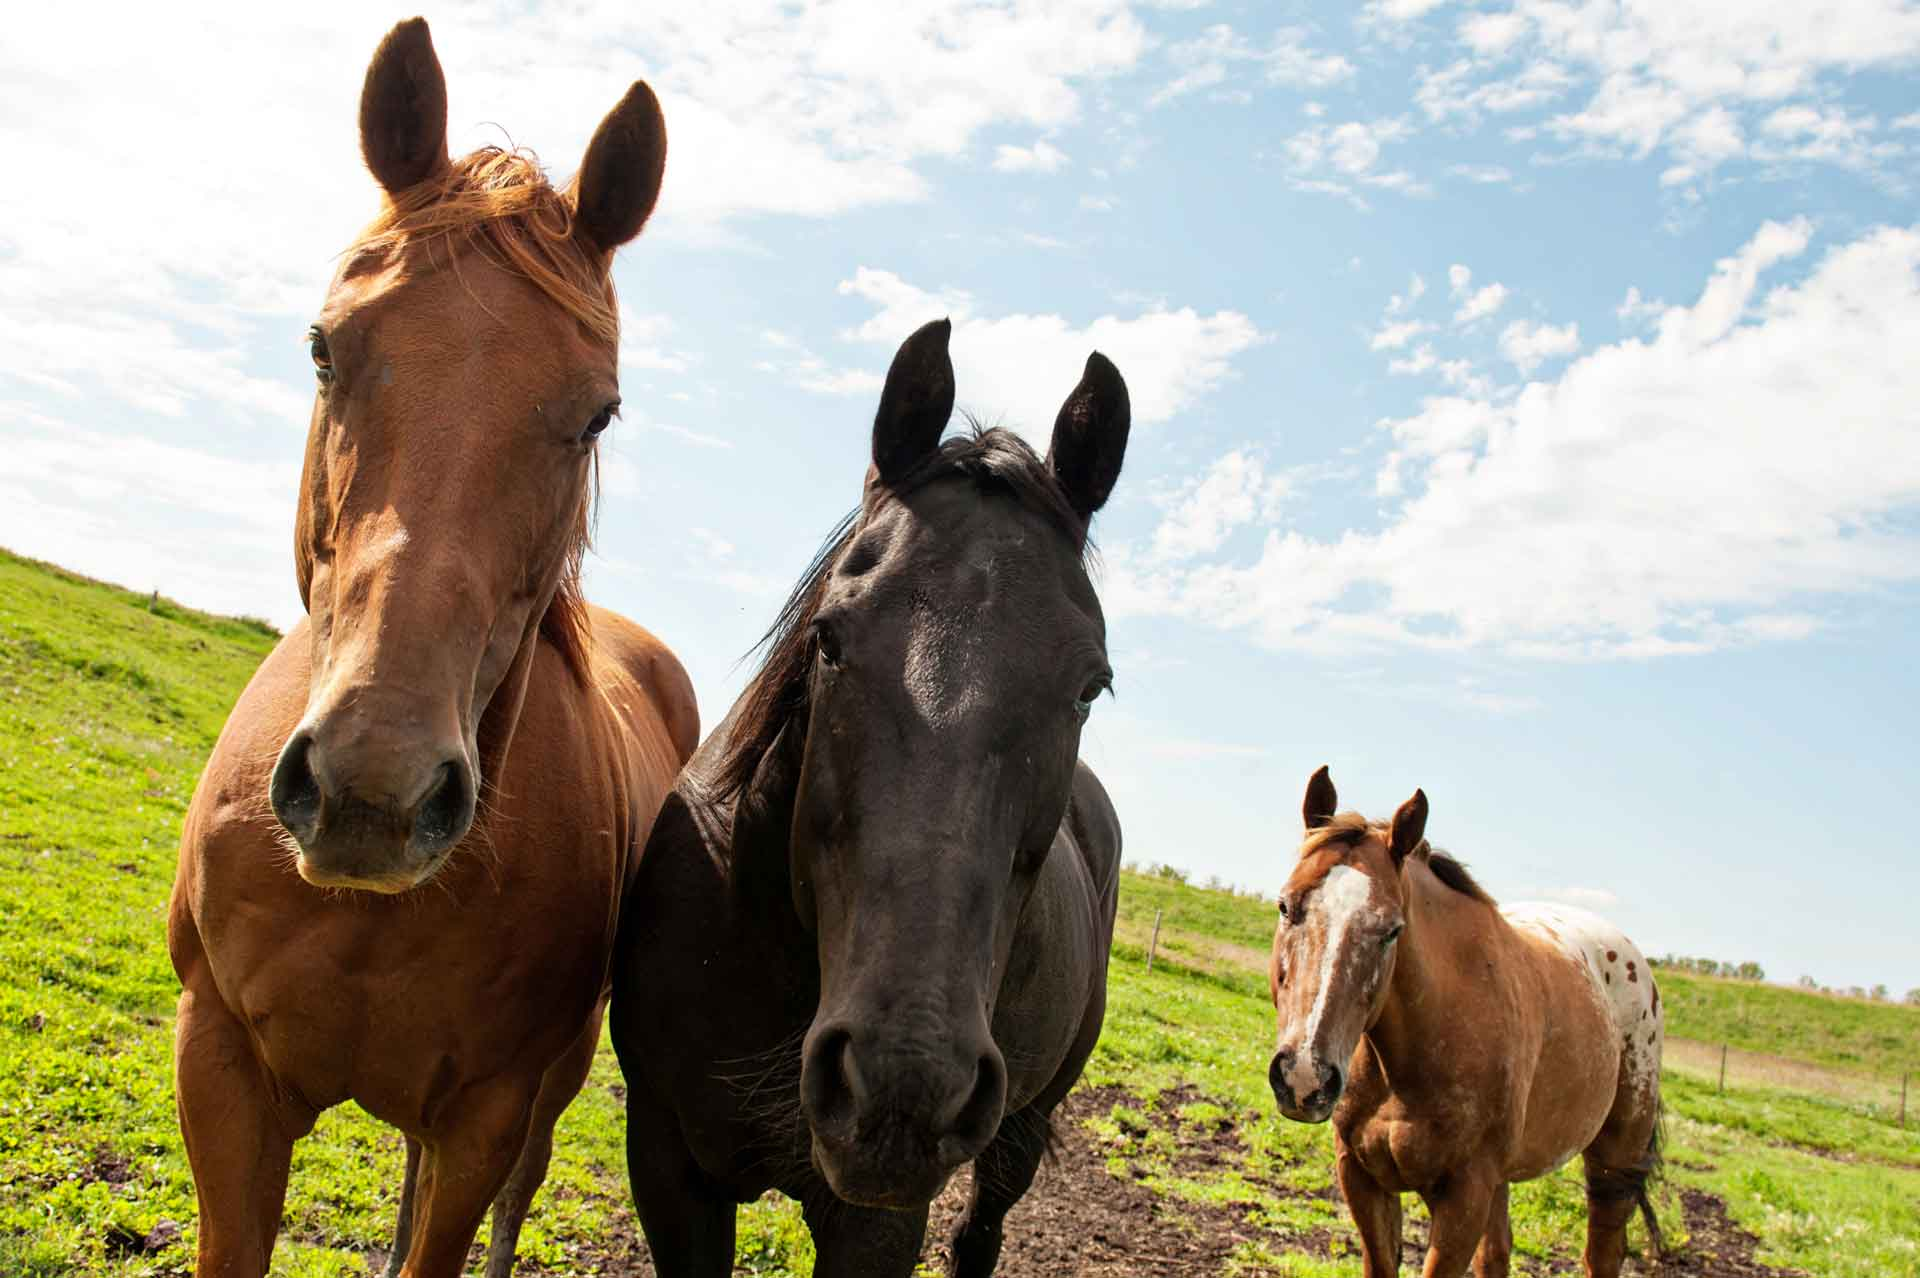 Equine therapy horses, Spice, Laddie and Cash.